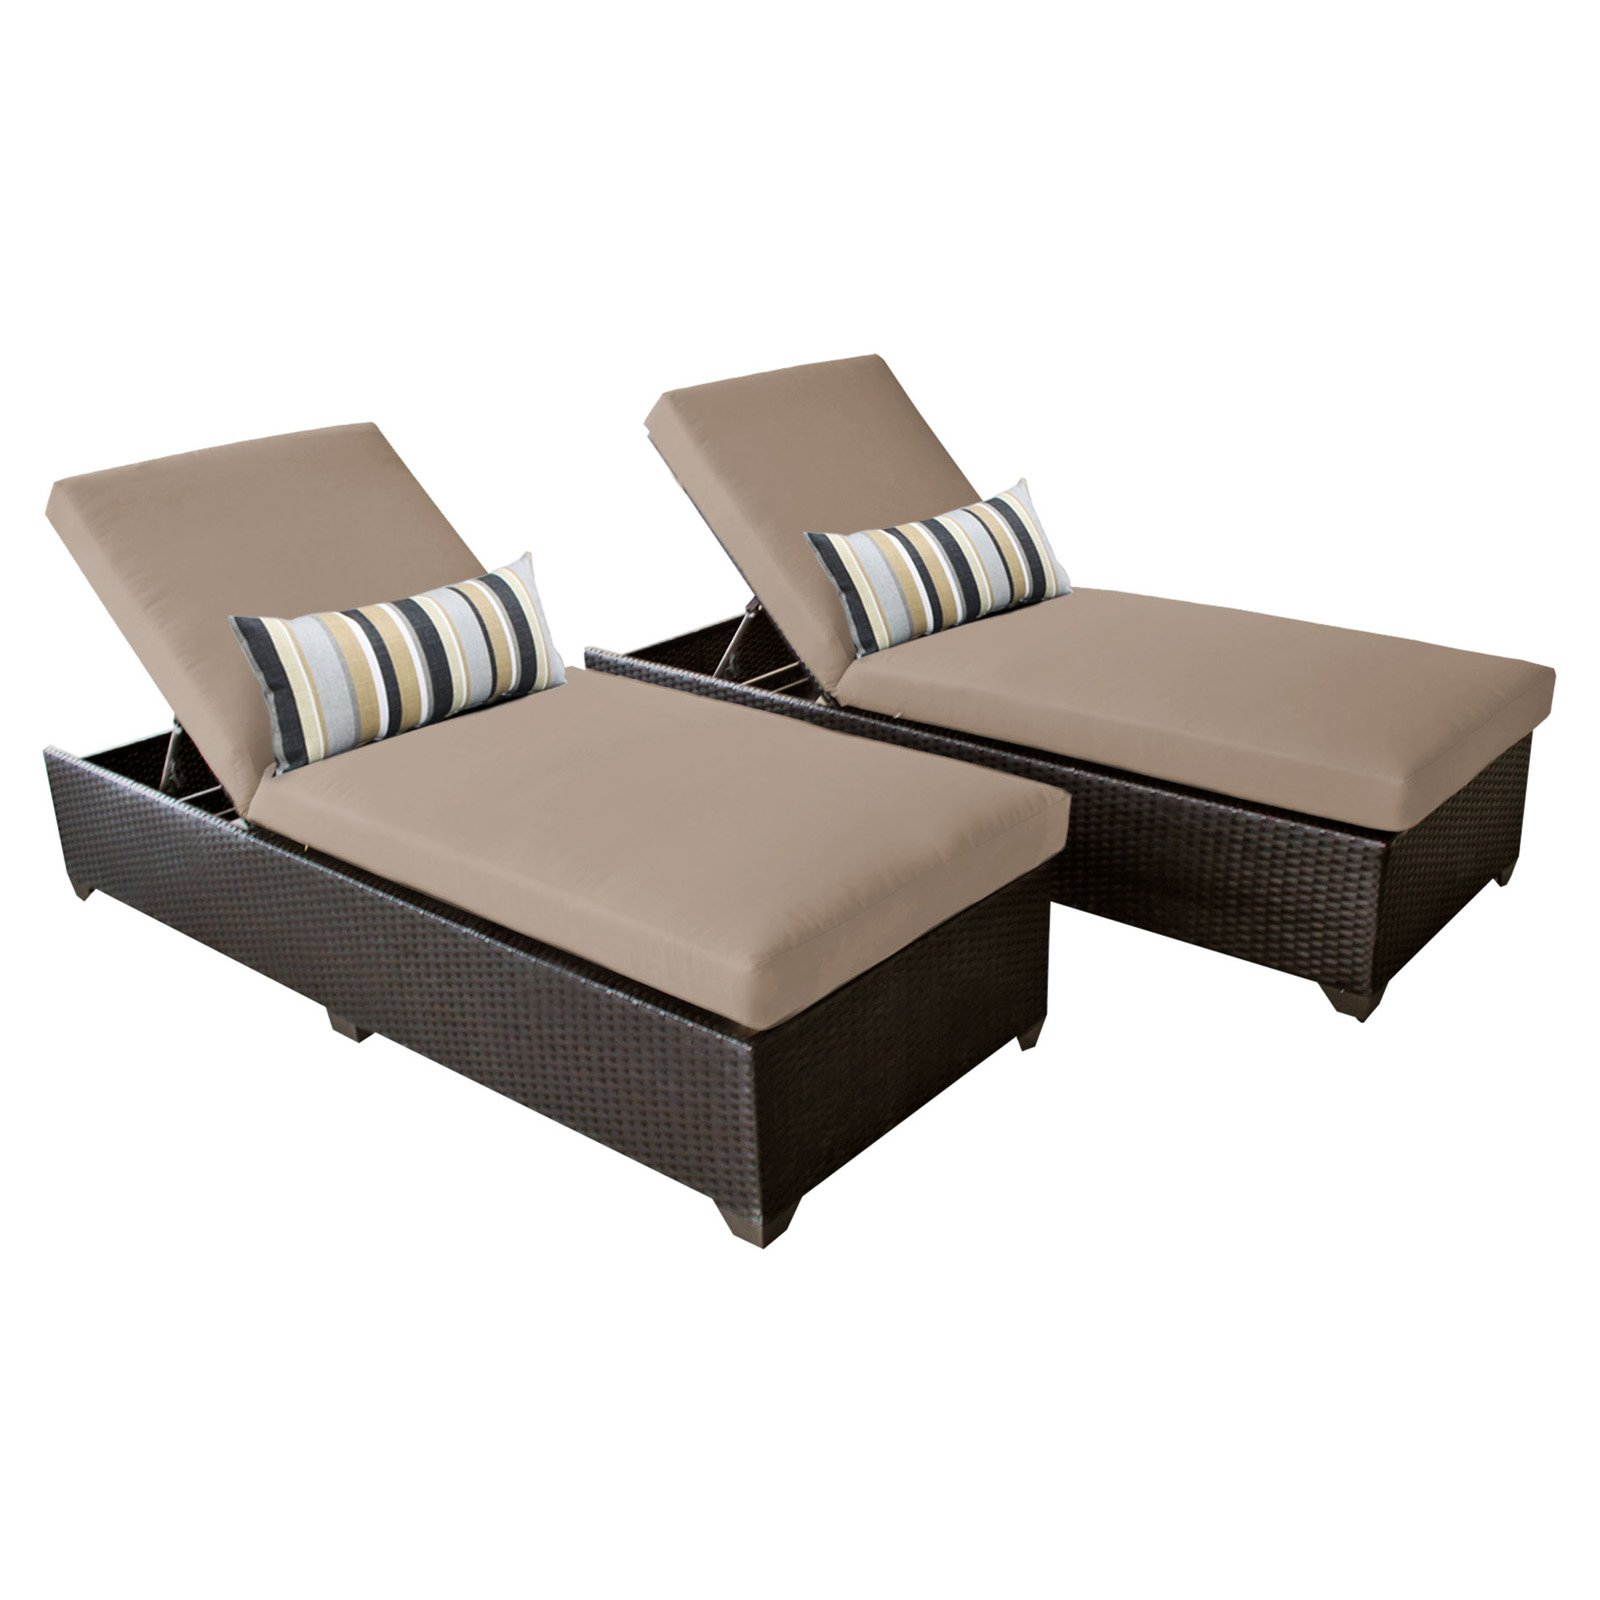 TK Classics Belle Wicker Outdoor Chaise Lounge - Set of 2